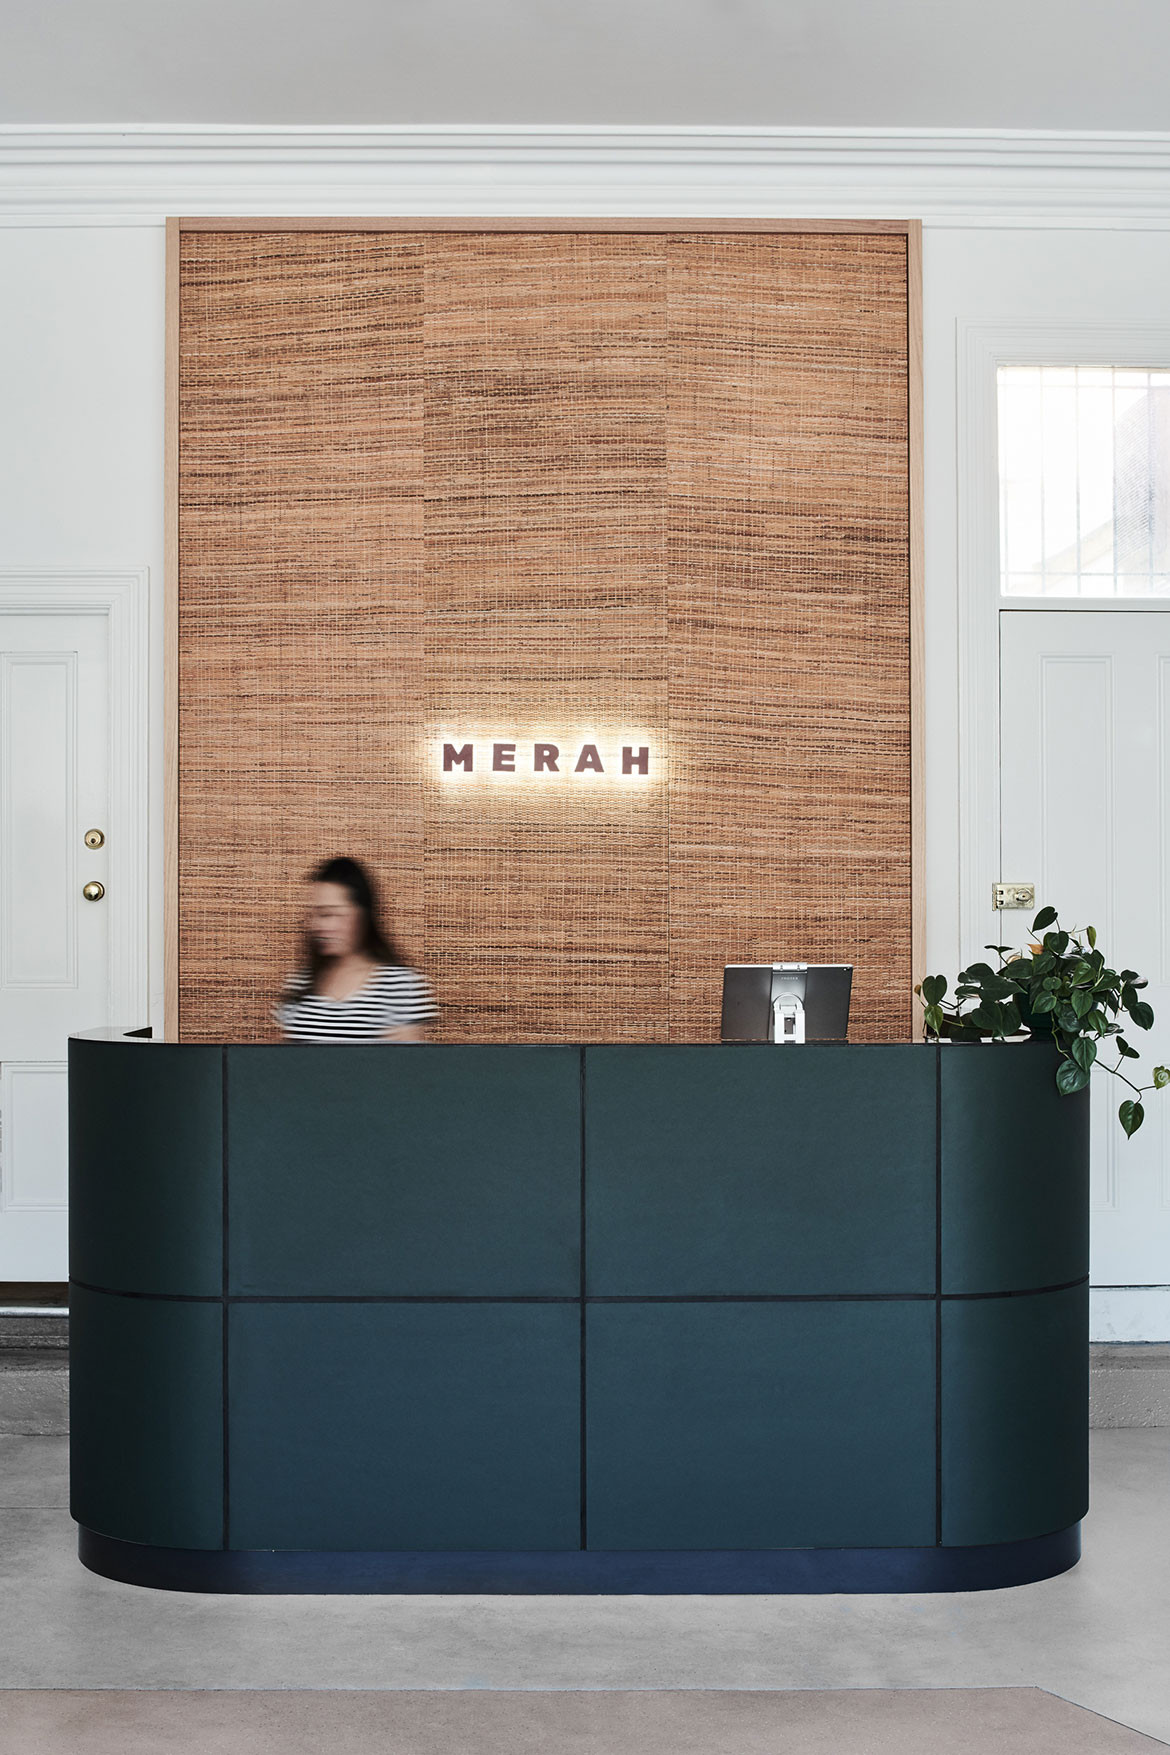 Merah One Design Office cc Tom Blachford entrance